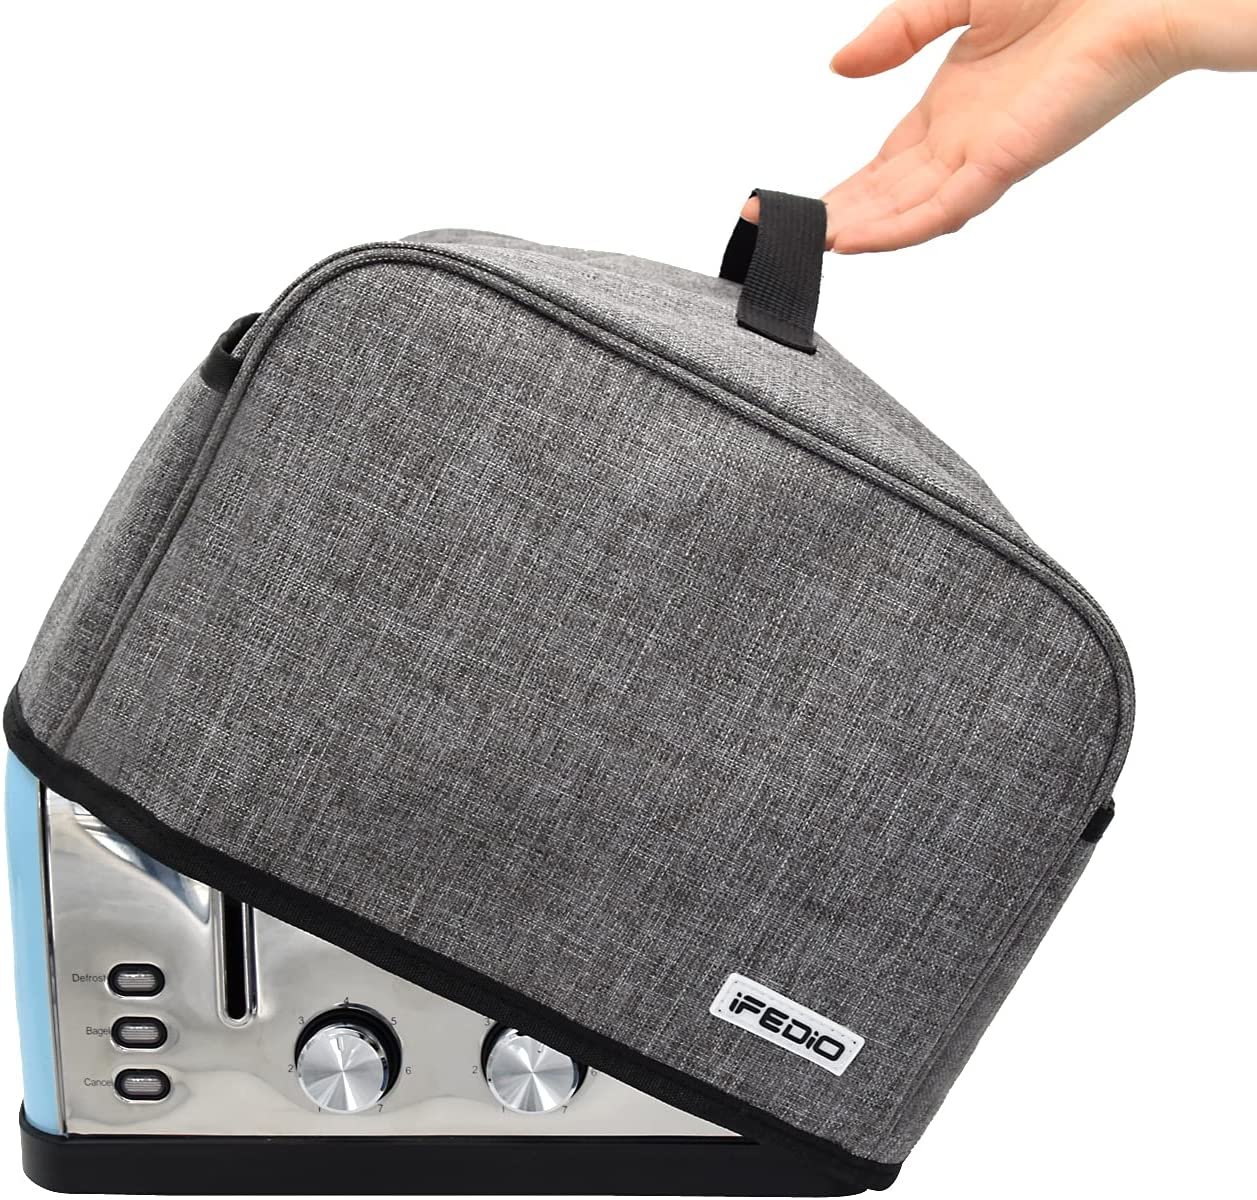 4 Slice Toaster Cover with Pockets & Top Handle,Small Appliance Toaster Dust Cover , Machine Washable(Grey)